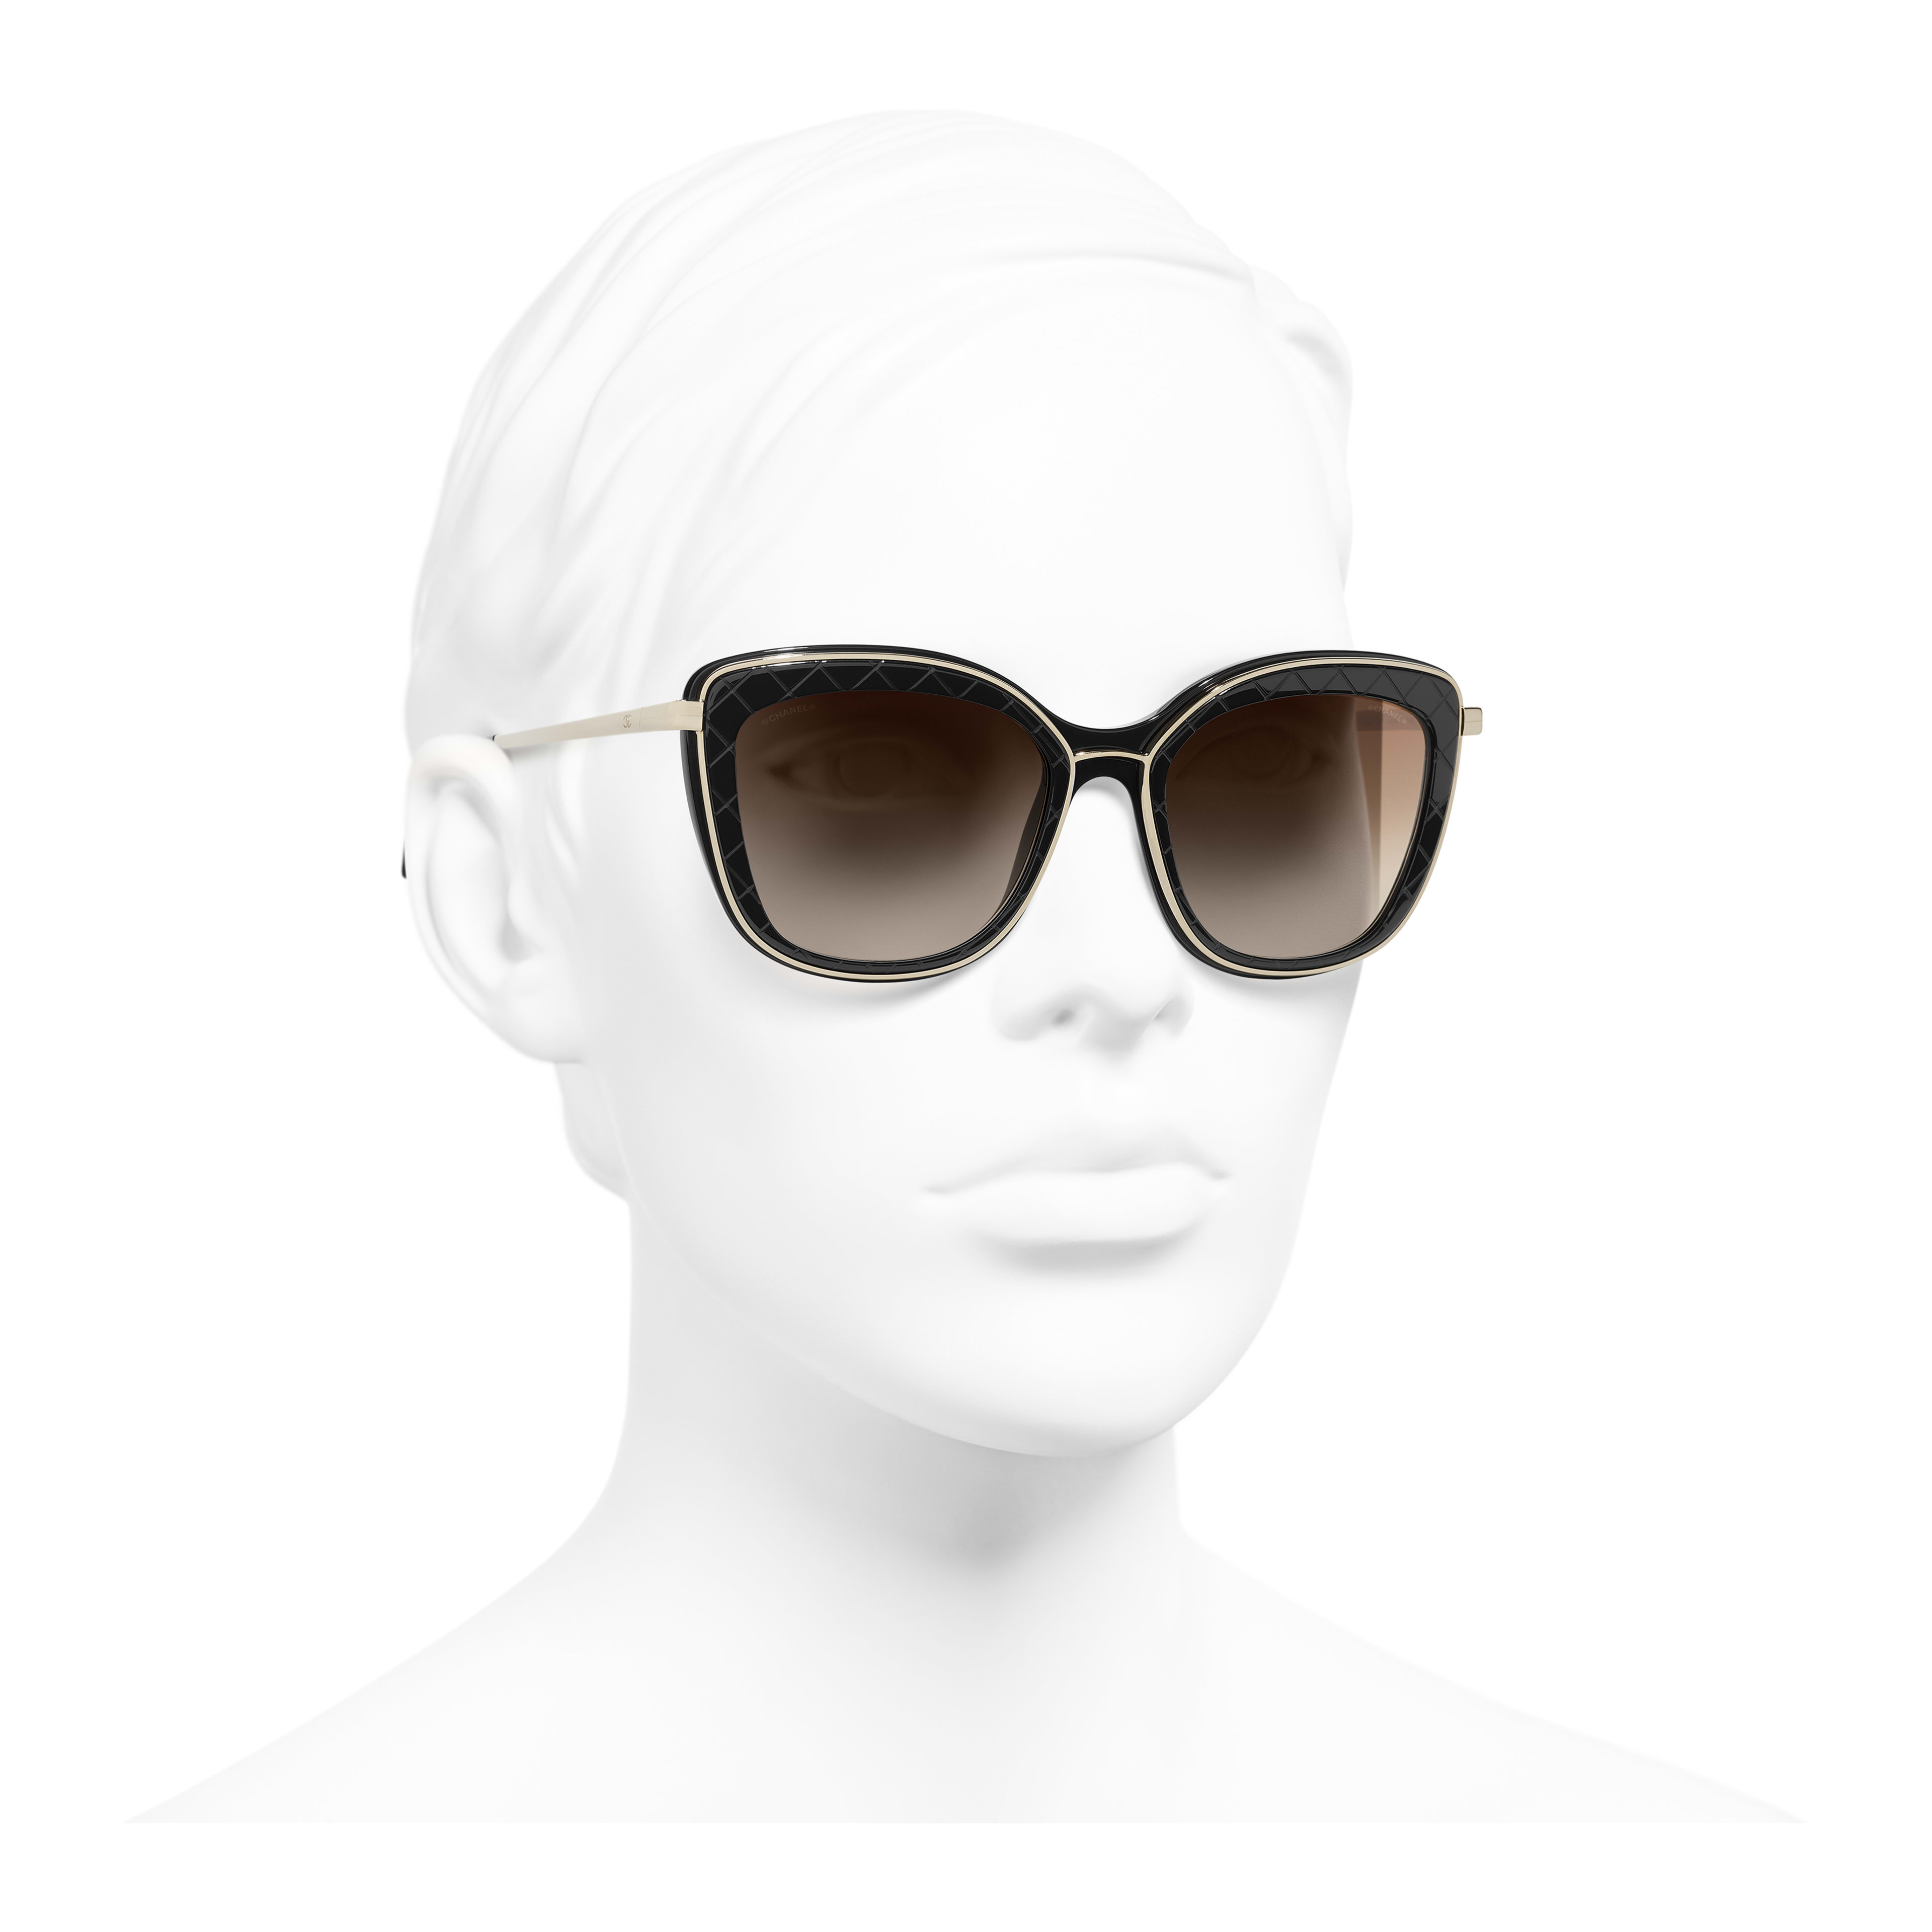 7481ffd4b961 Chanel Butterfly Acetate Sunglasses - Best Image Of Butterfly ...